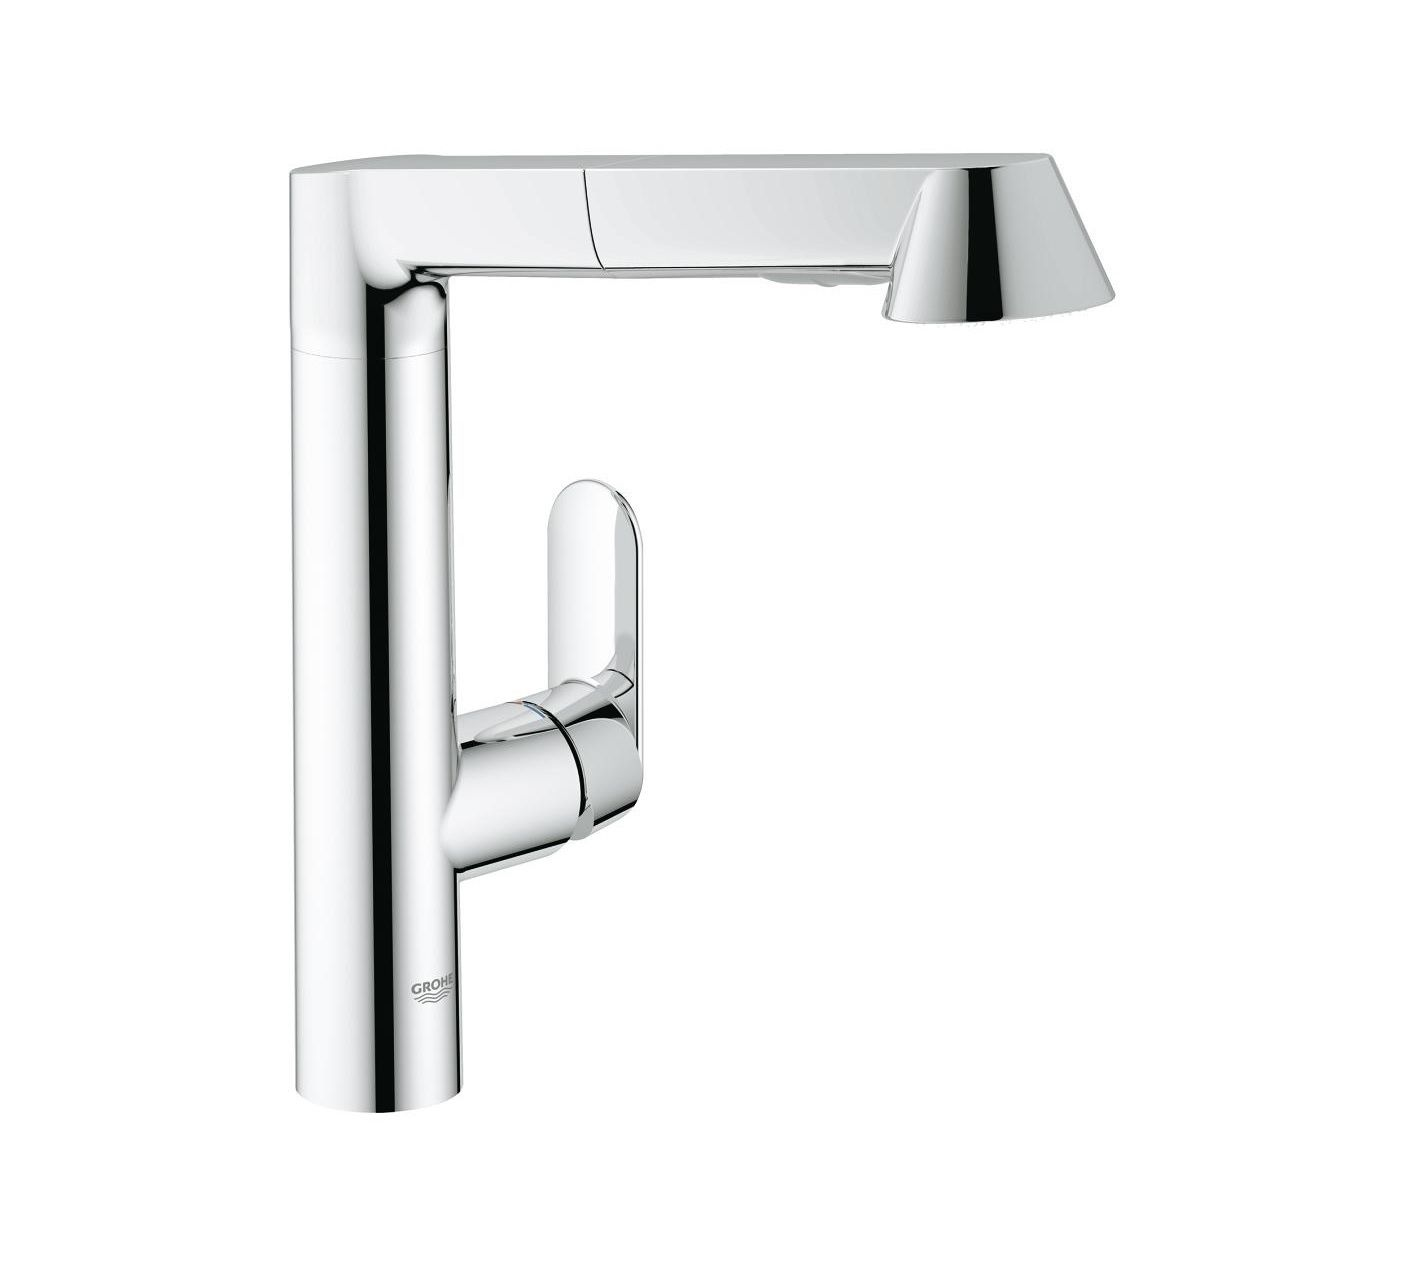 Grohe Kitchen Faucet K7 32178000 Dco Supersteel Bliss Bath And Kitchen